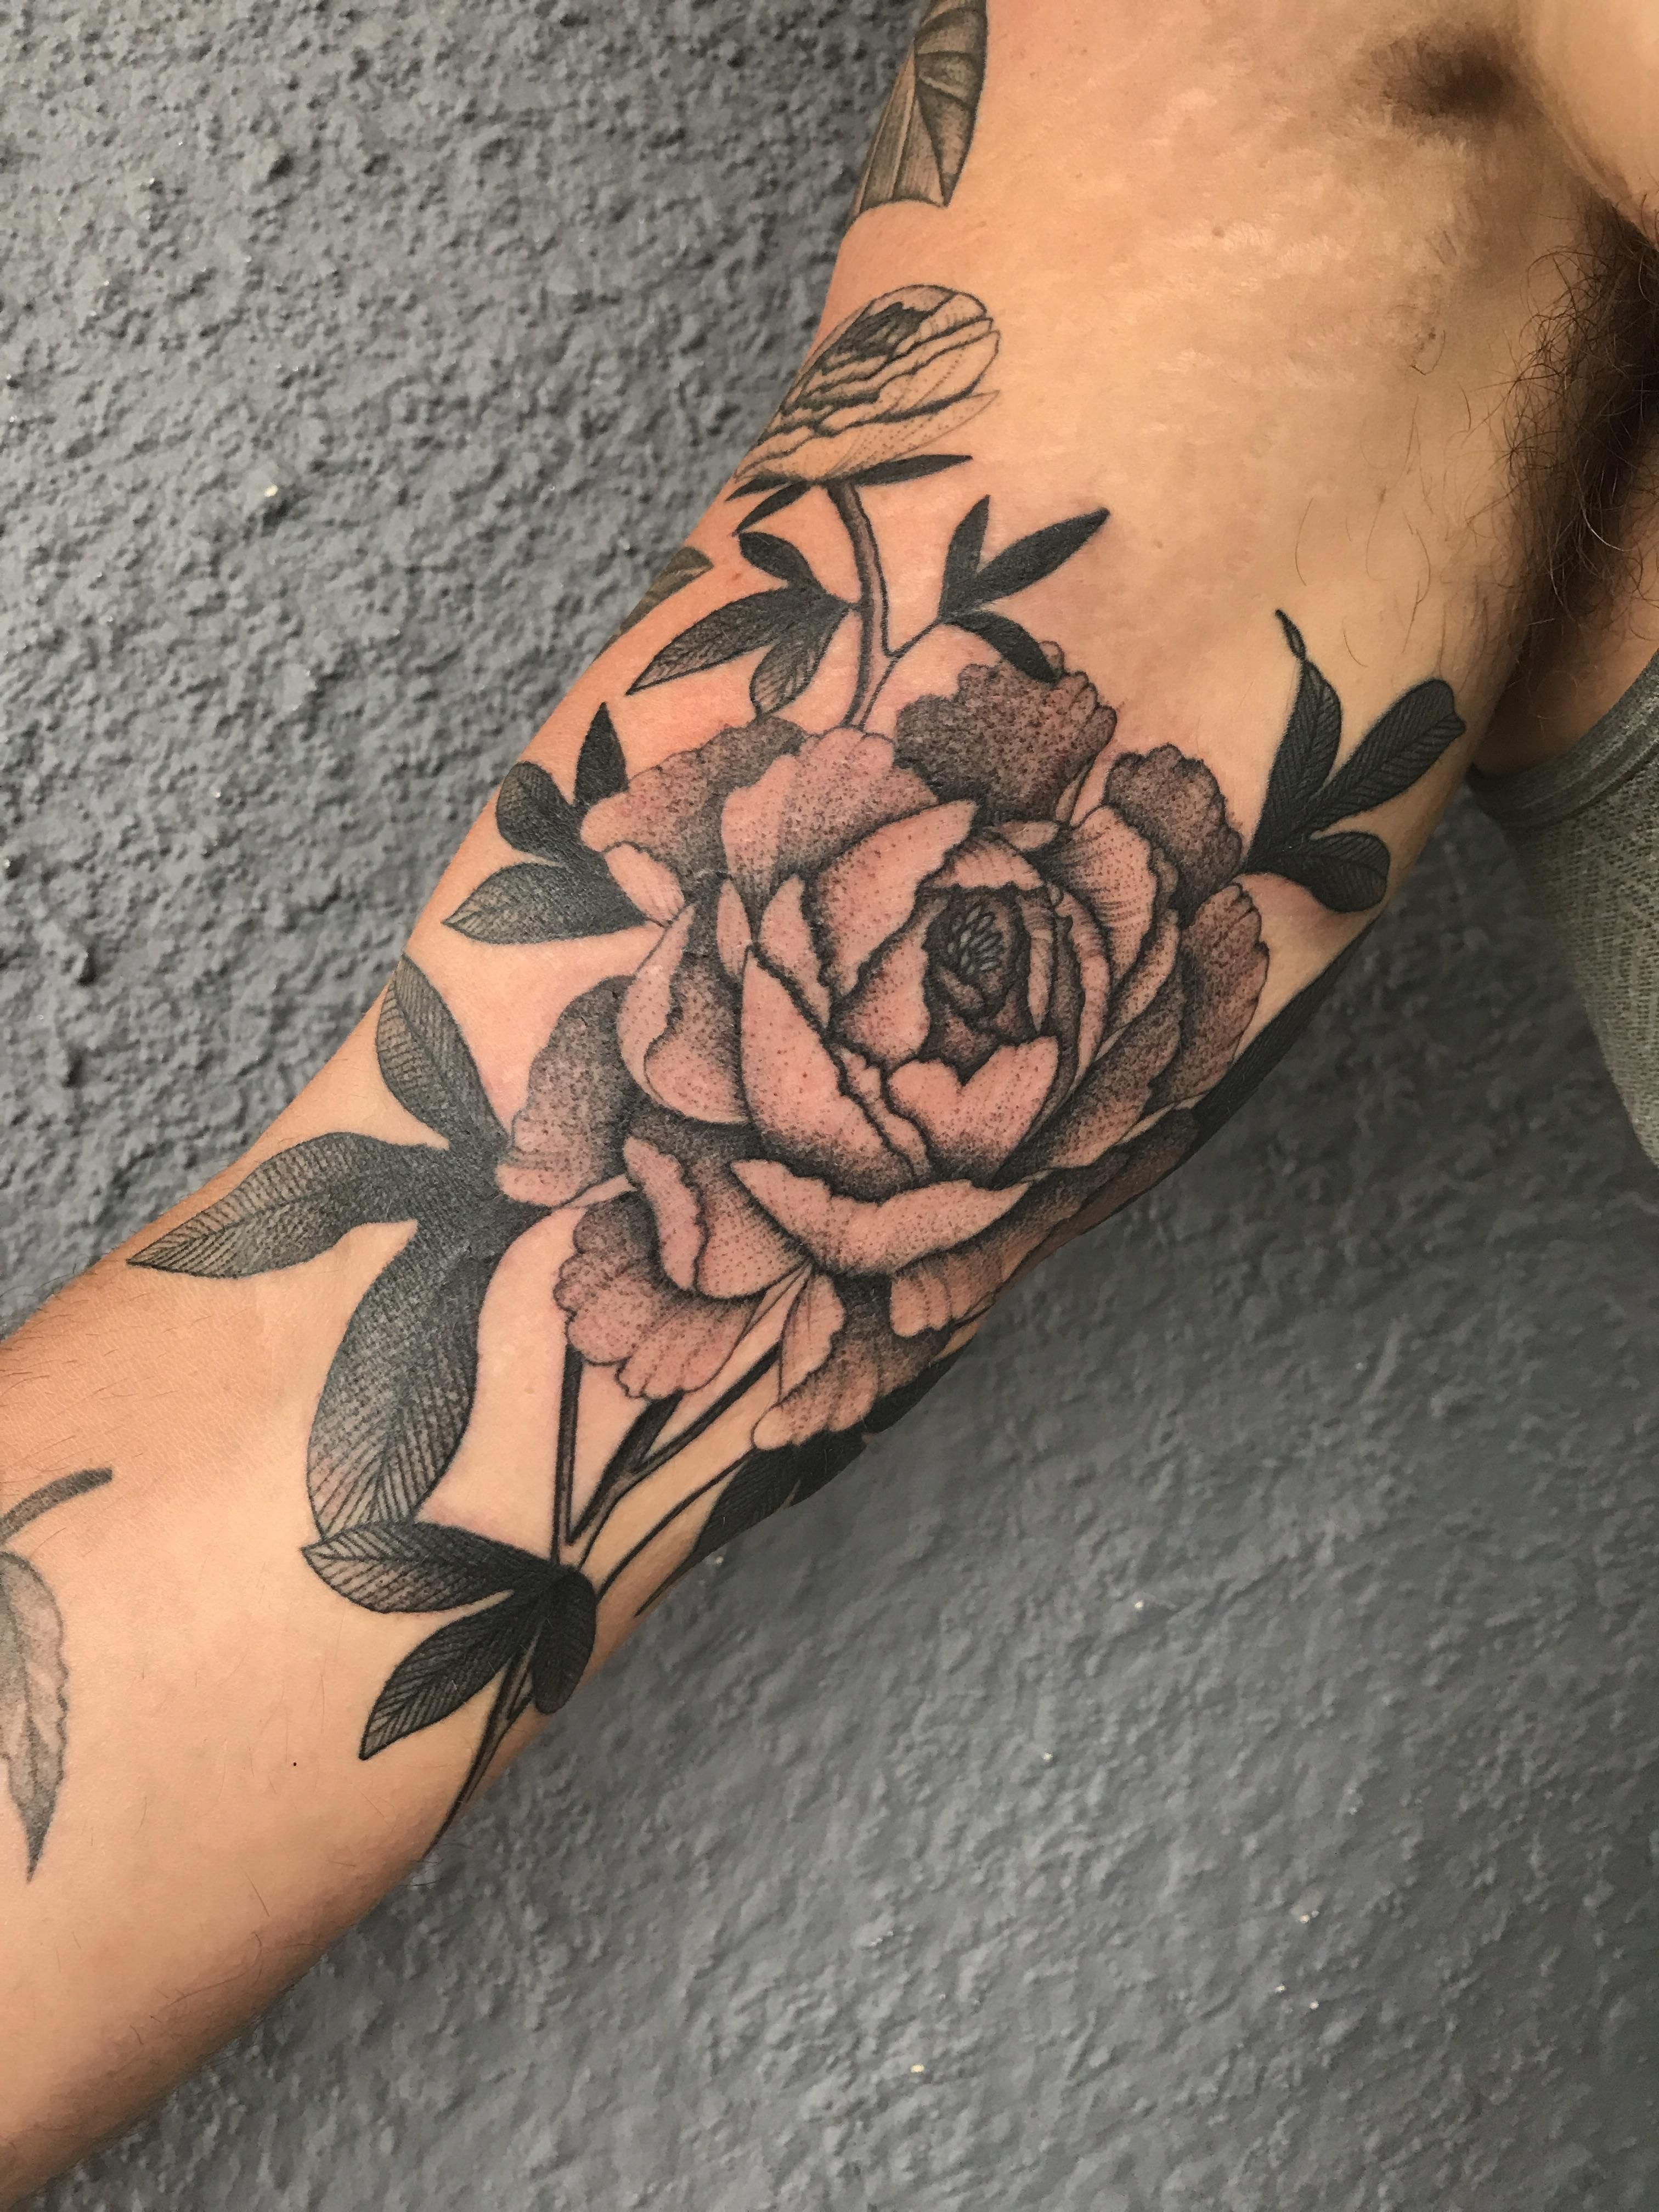 Third Tattoo By Justin Olivier At Downtown Tattoo In New Orleans